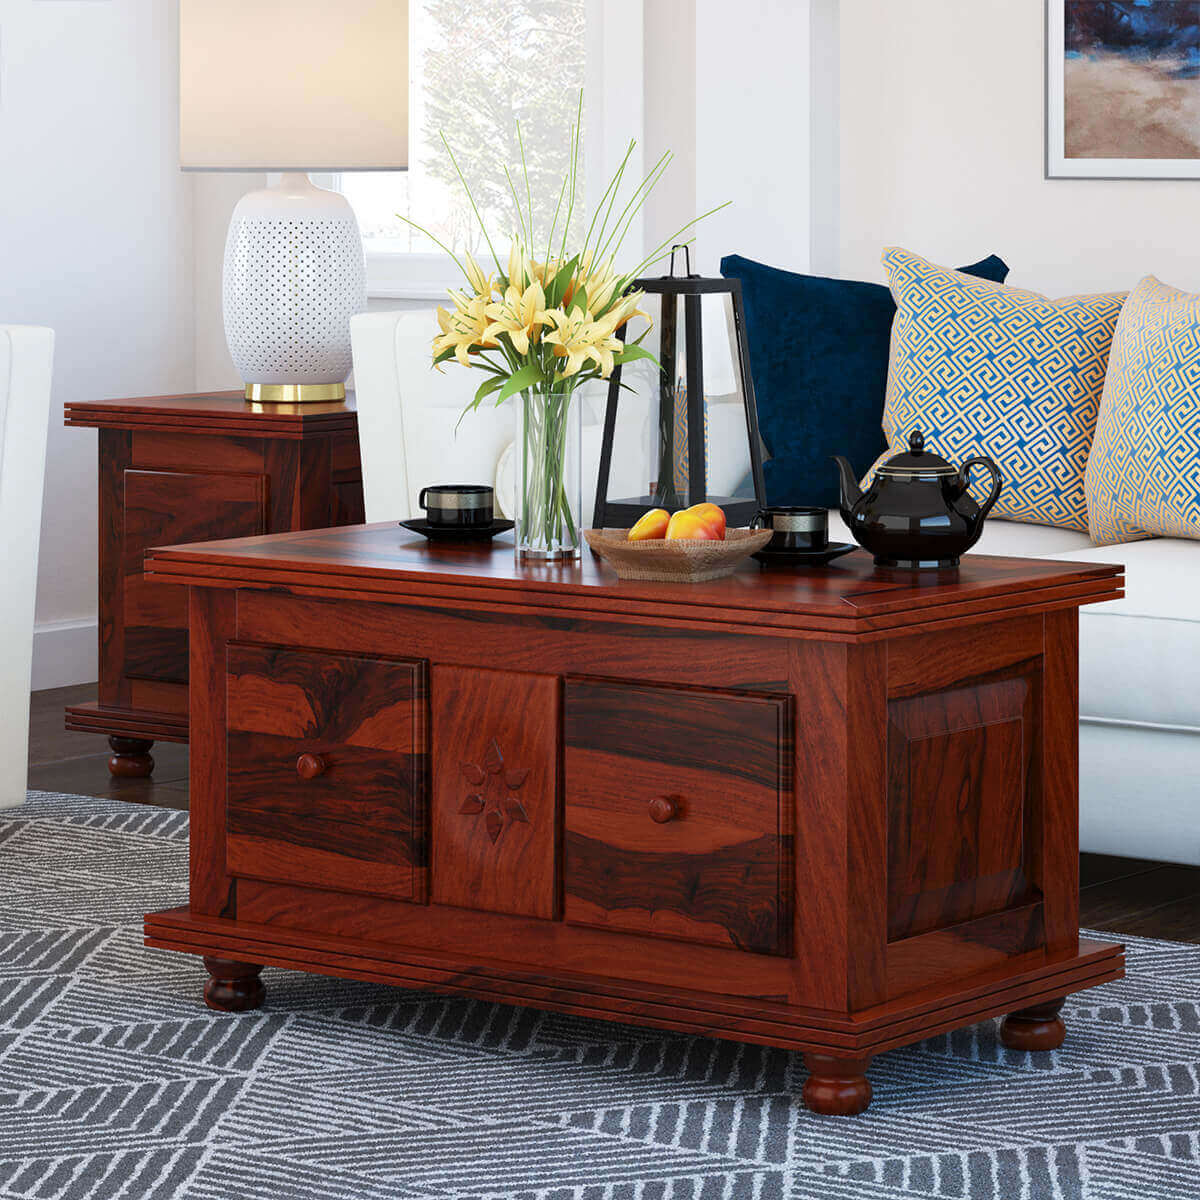 Rustic Wood Drawers Storage Cocktail Coffee Table